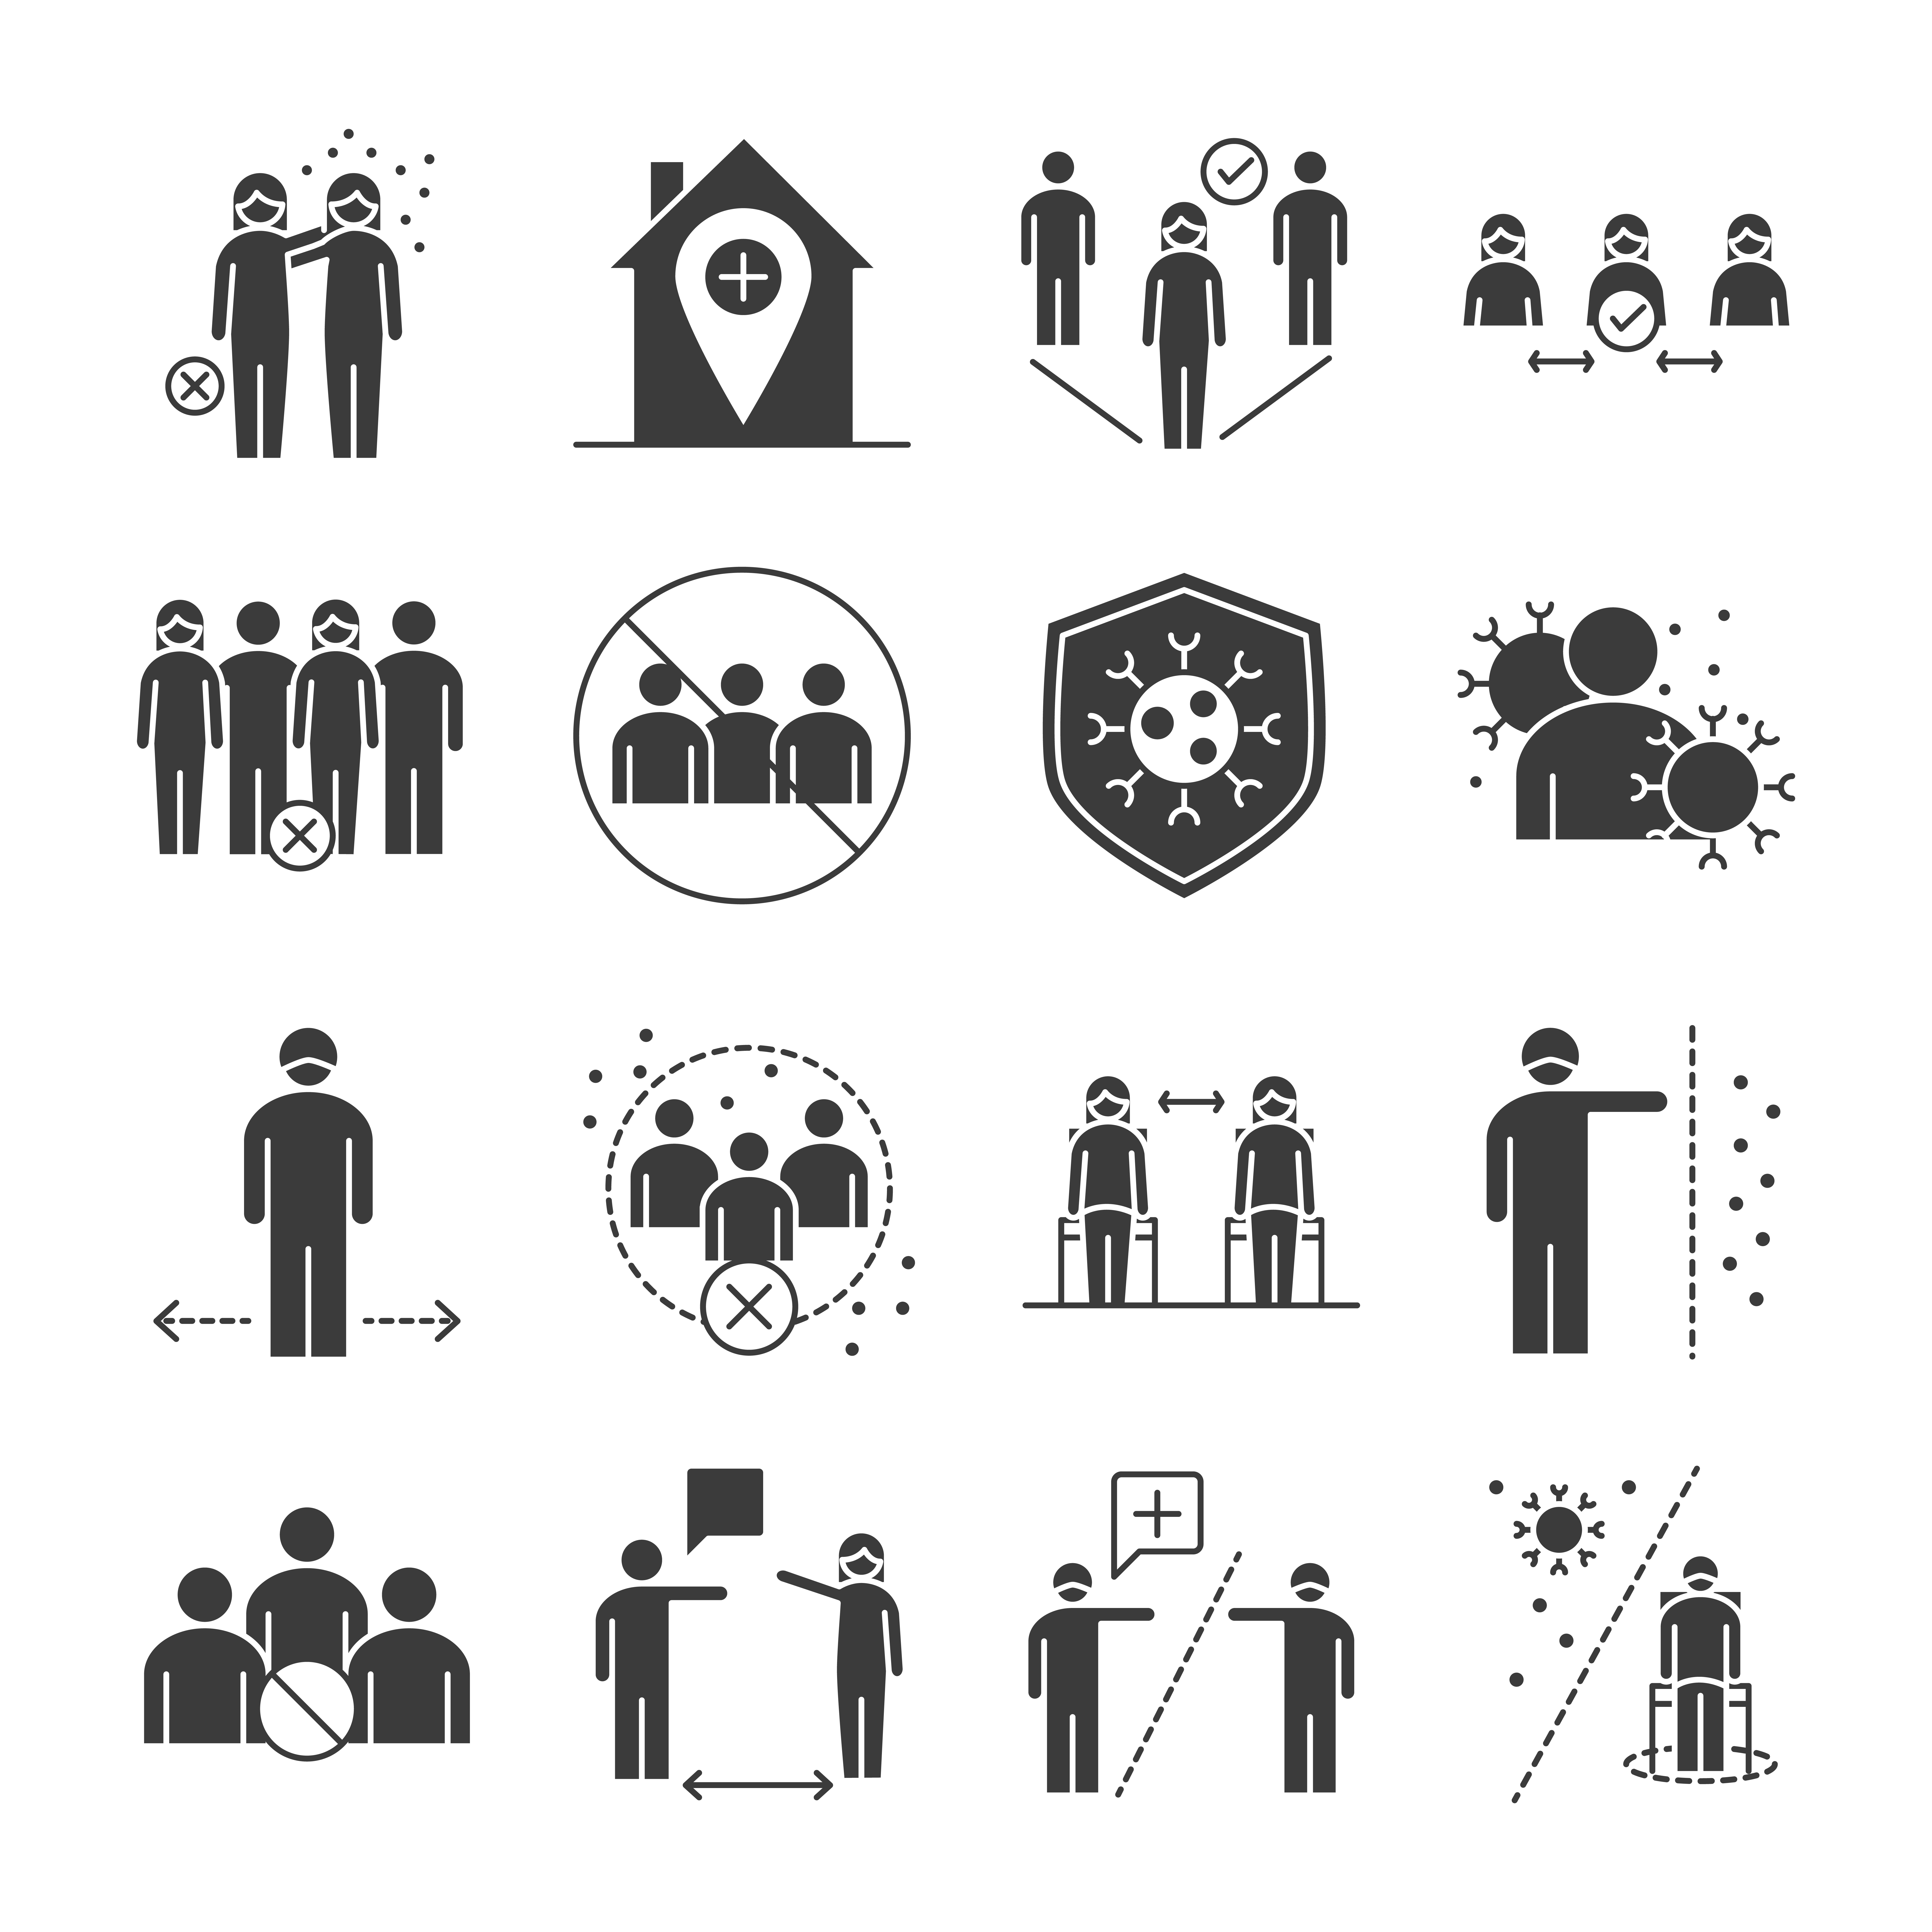 Viral infection pictogram icon set